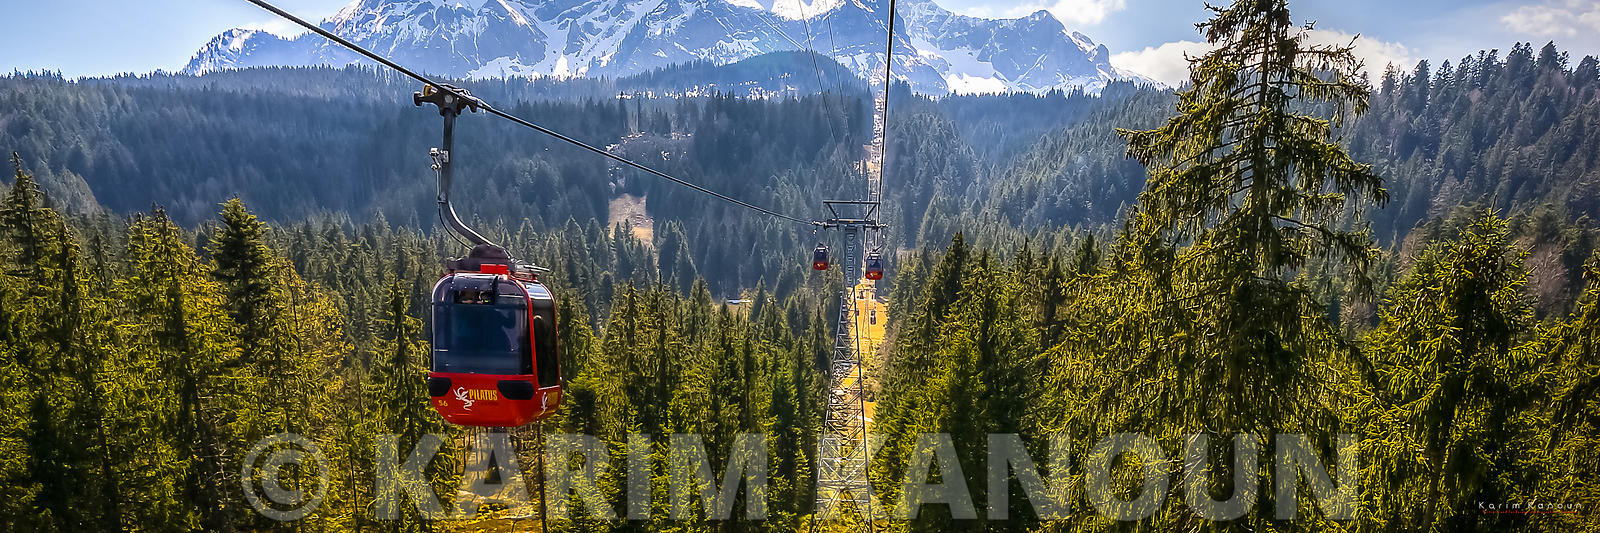 Panorama - Pilatus cable car - Lucerne